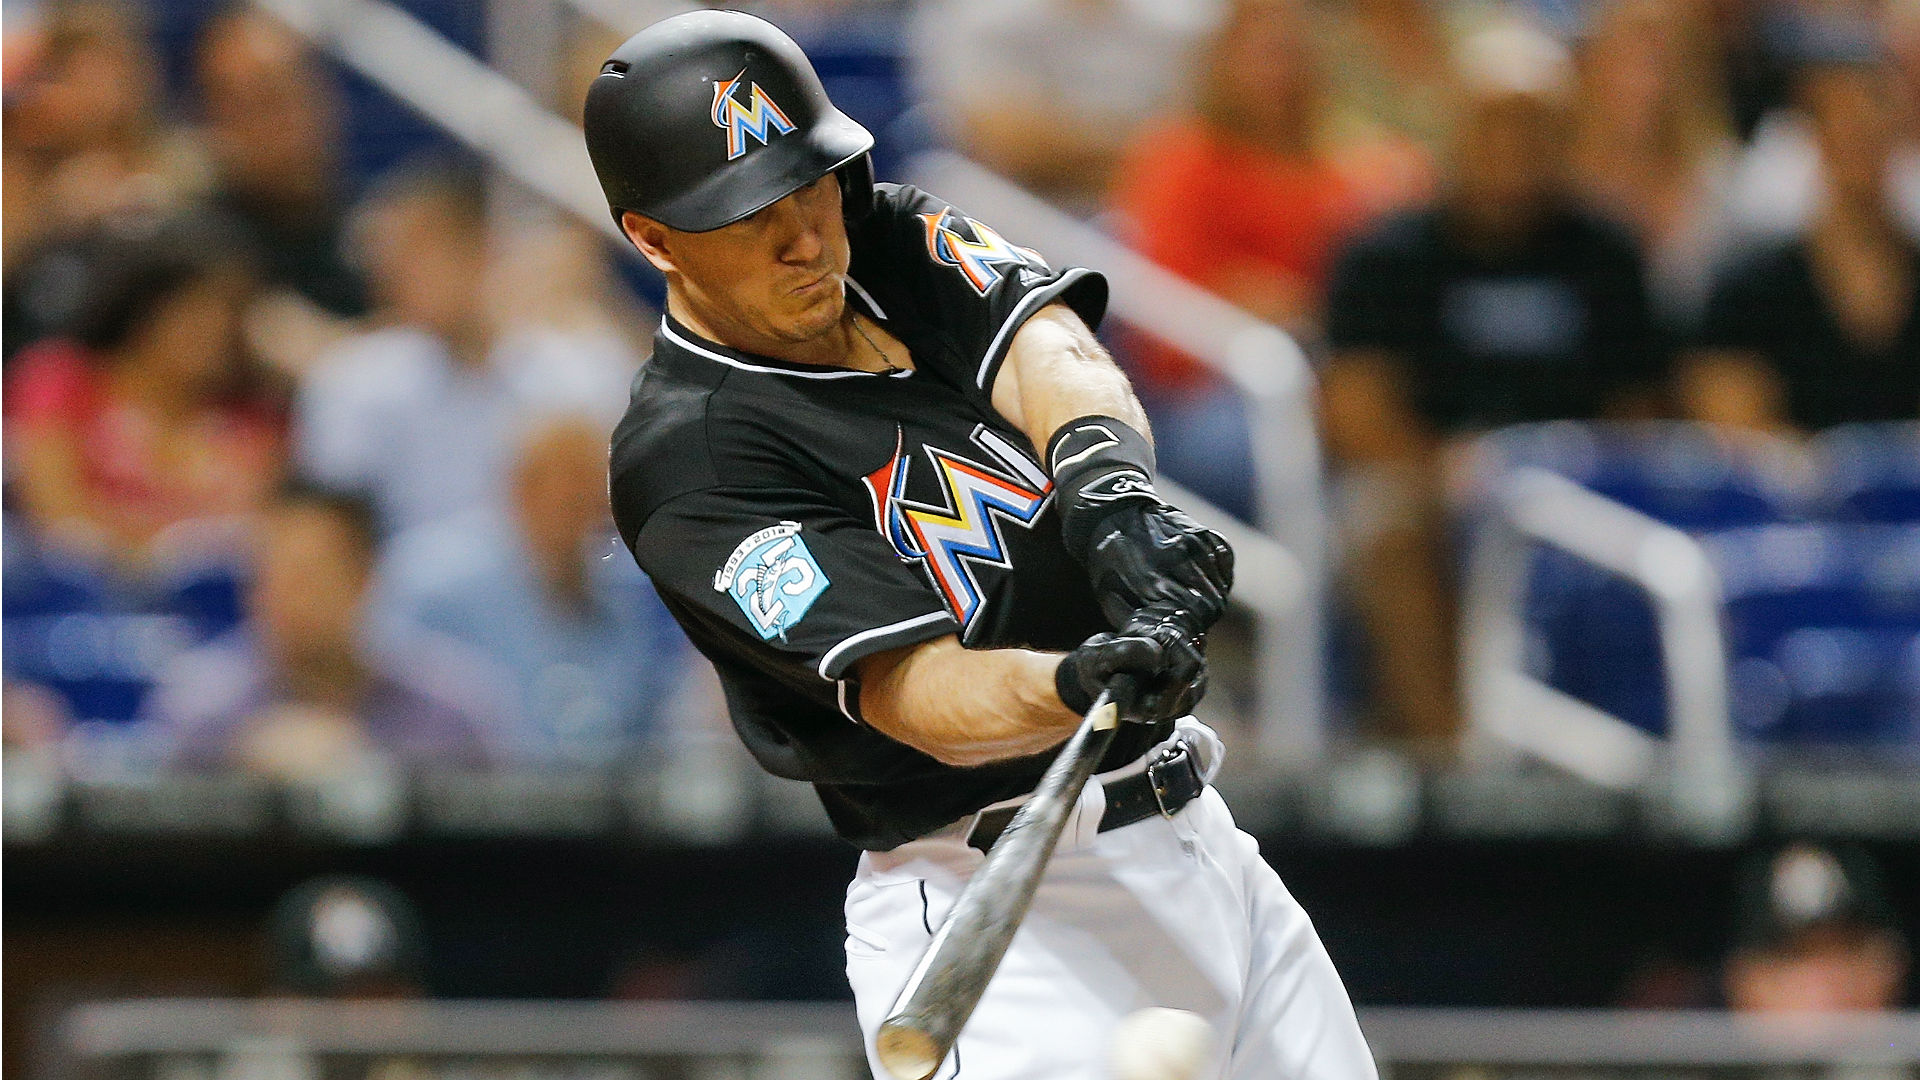 MLB trade rumors: Nationals could revisit pursuit of J.T. Realmuto, Marlins' All-Star catcher